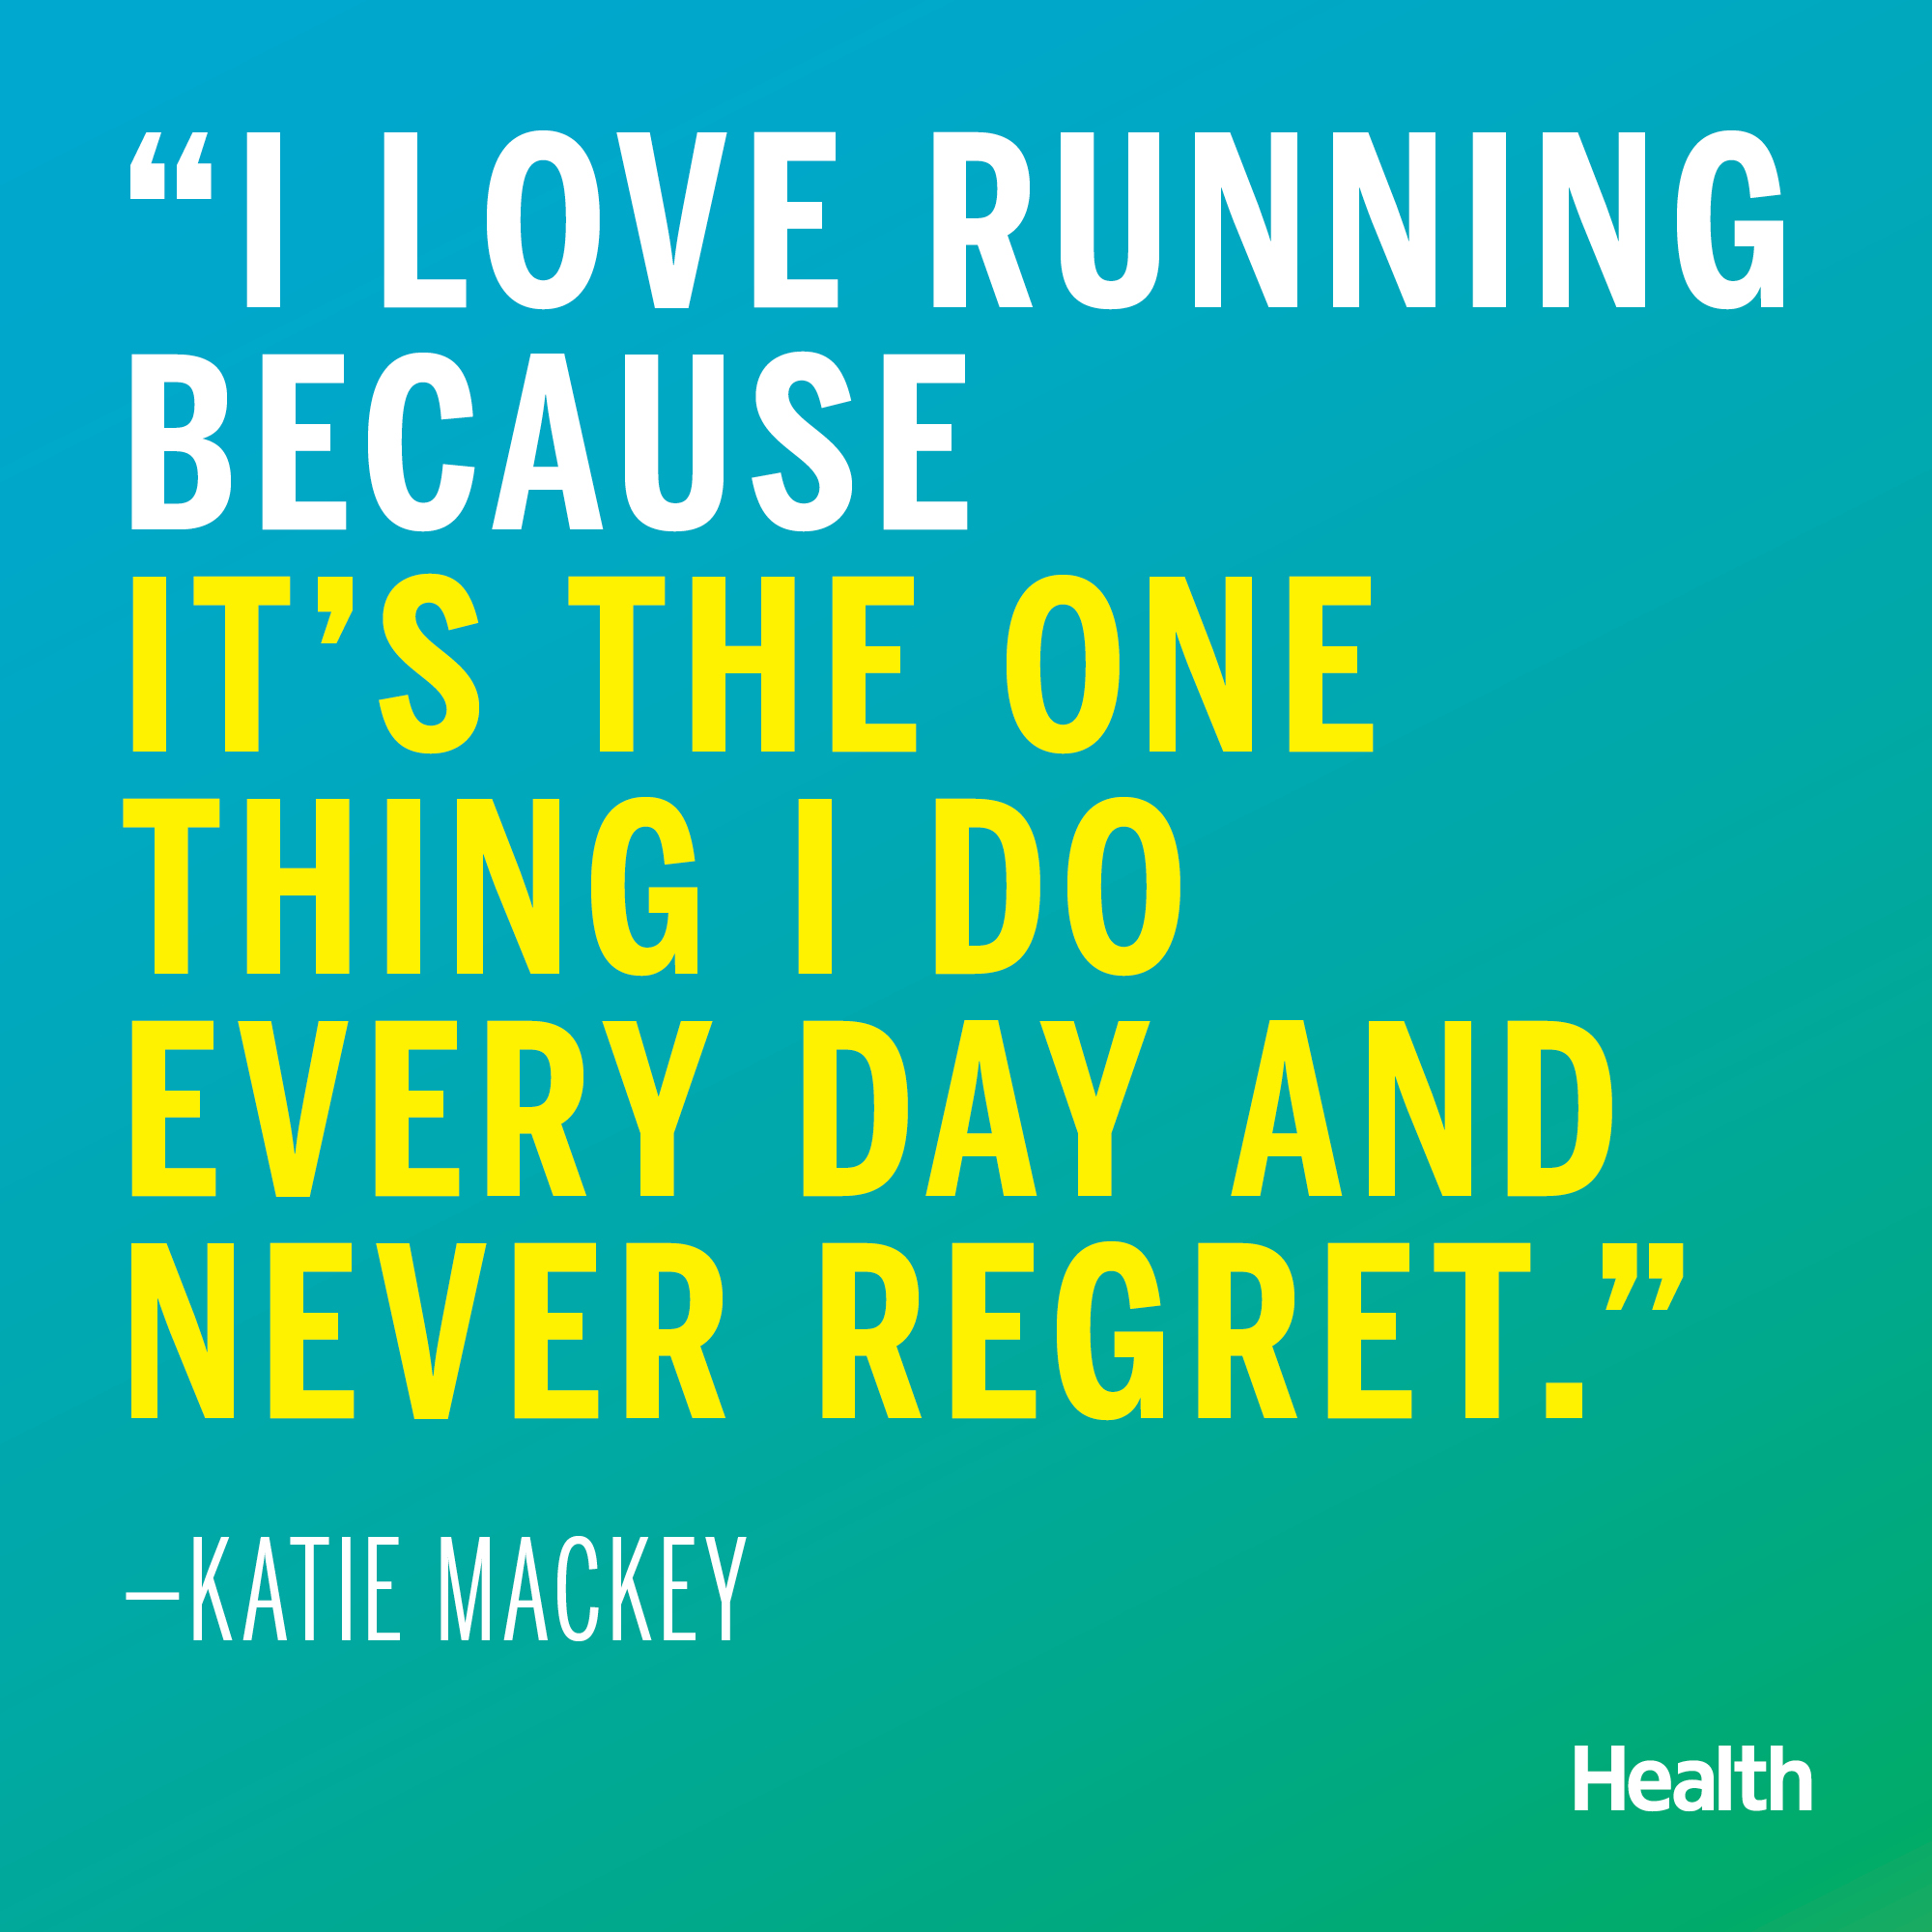 katie-mackey-inspirational-quote